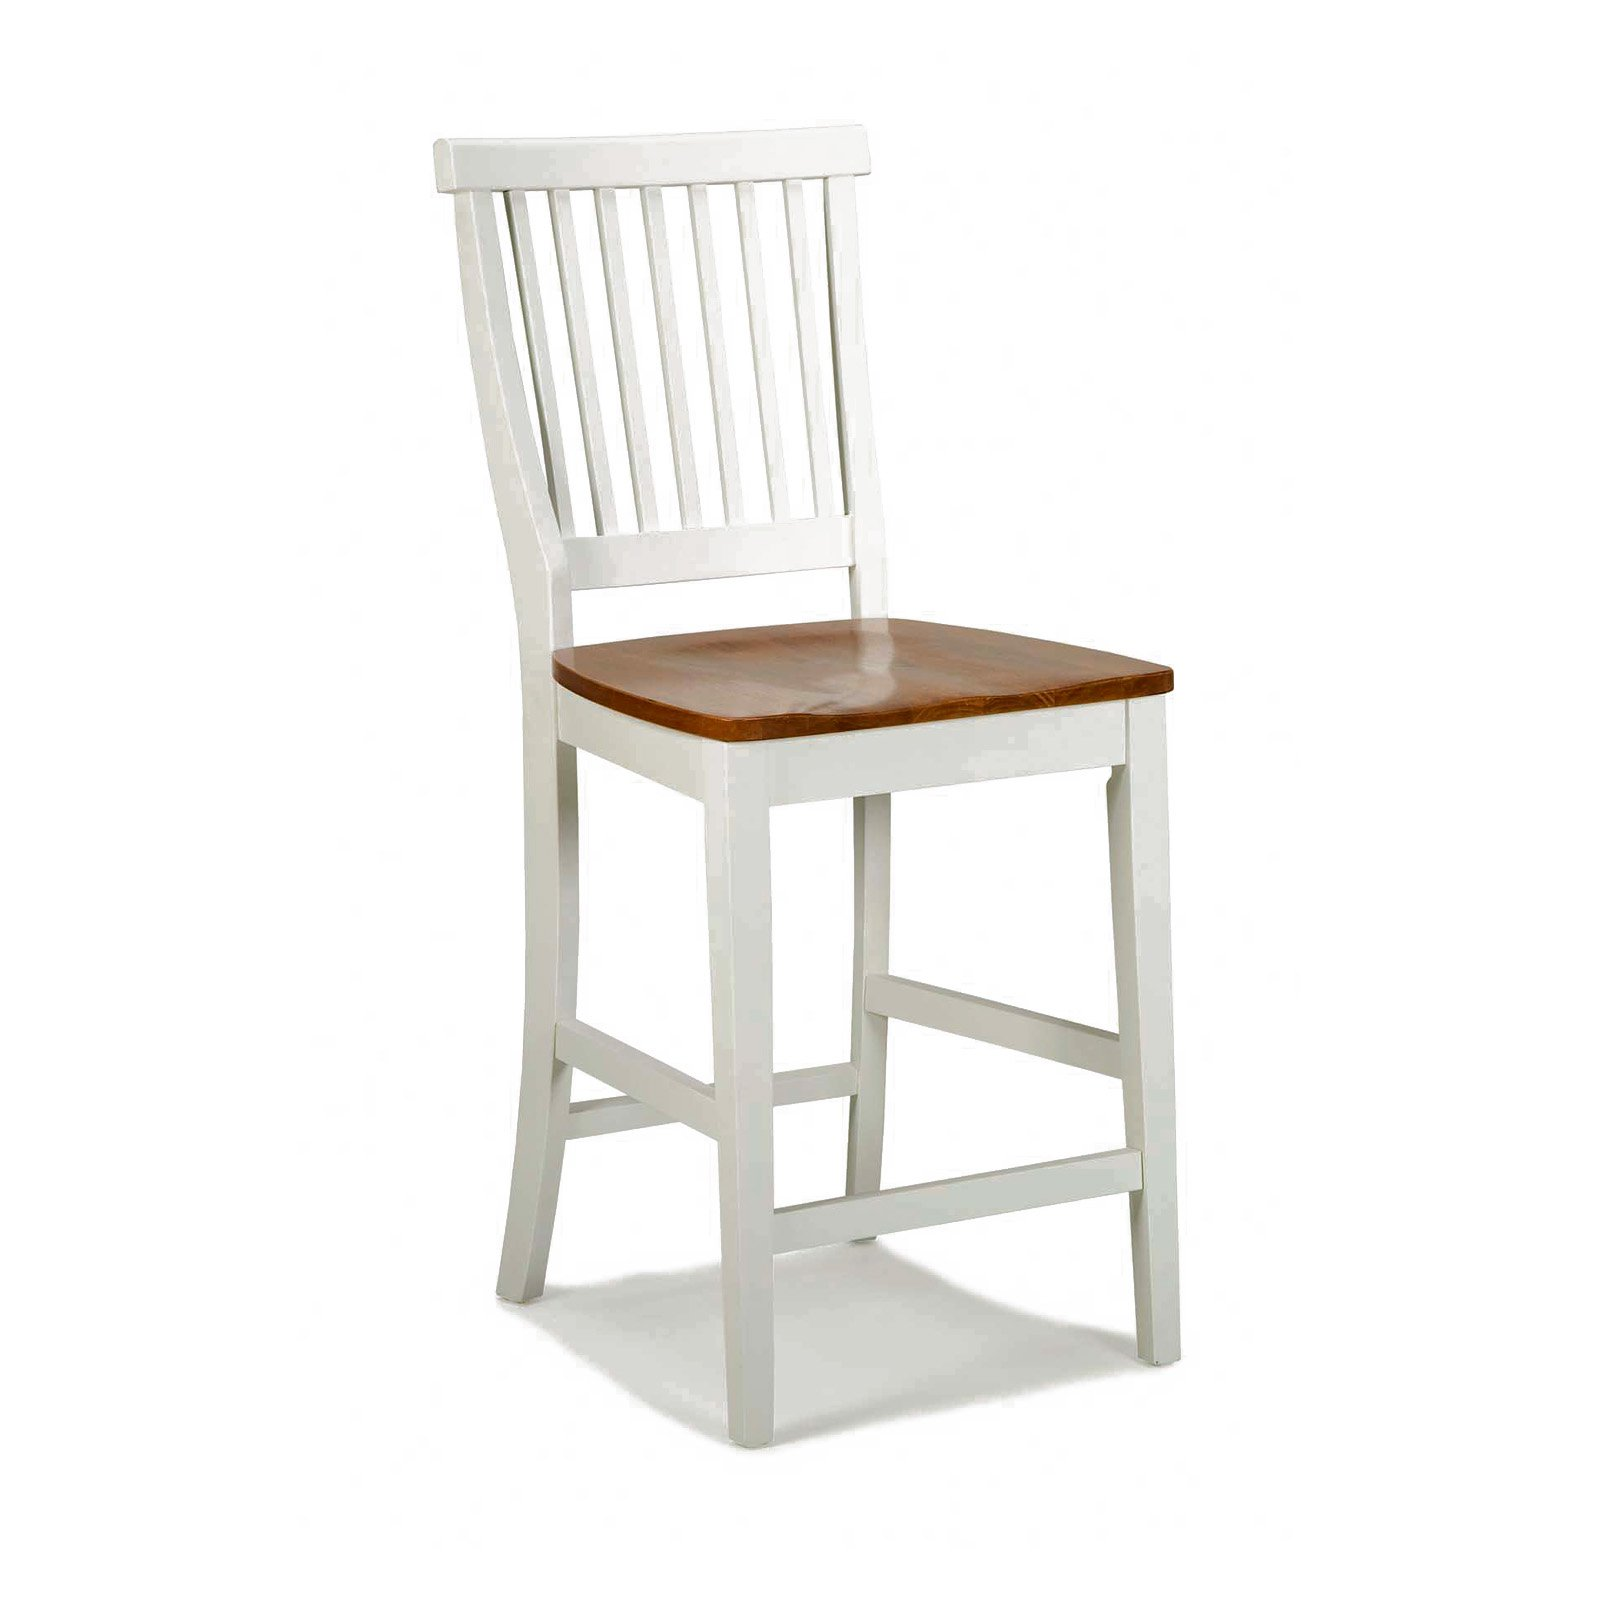 wooden bar stool chairs kid tables and white wood stools homesfeed